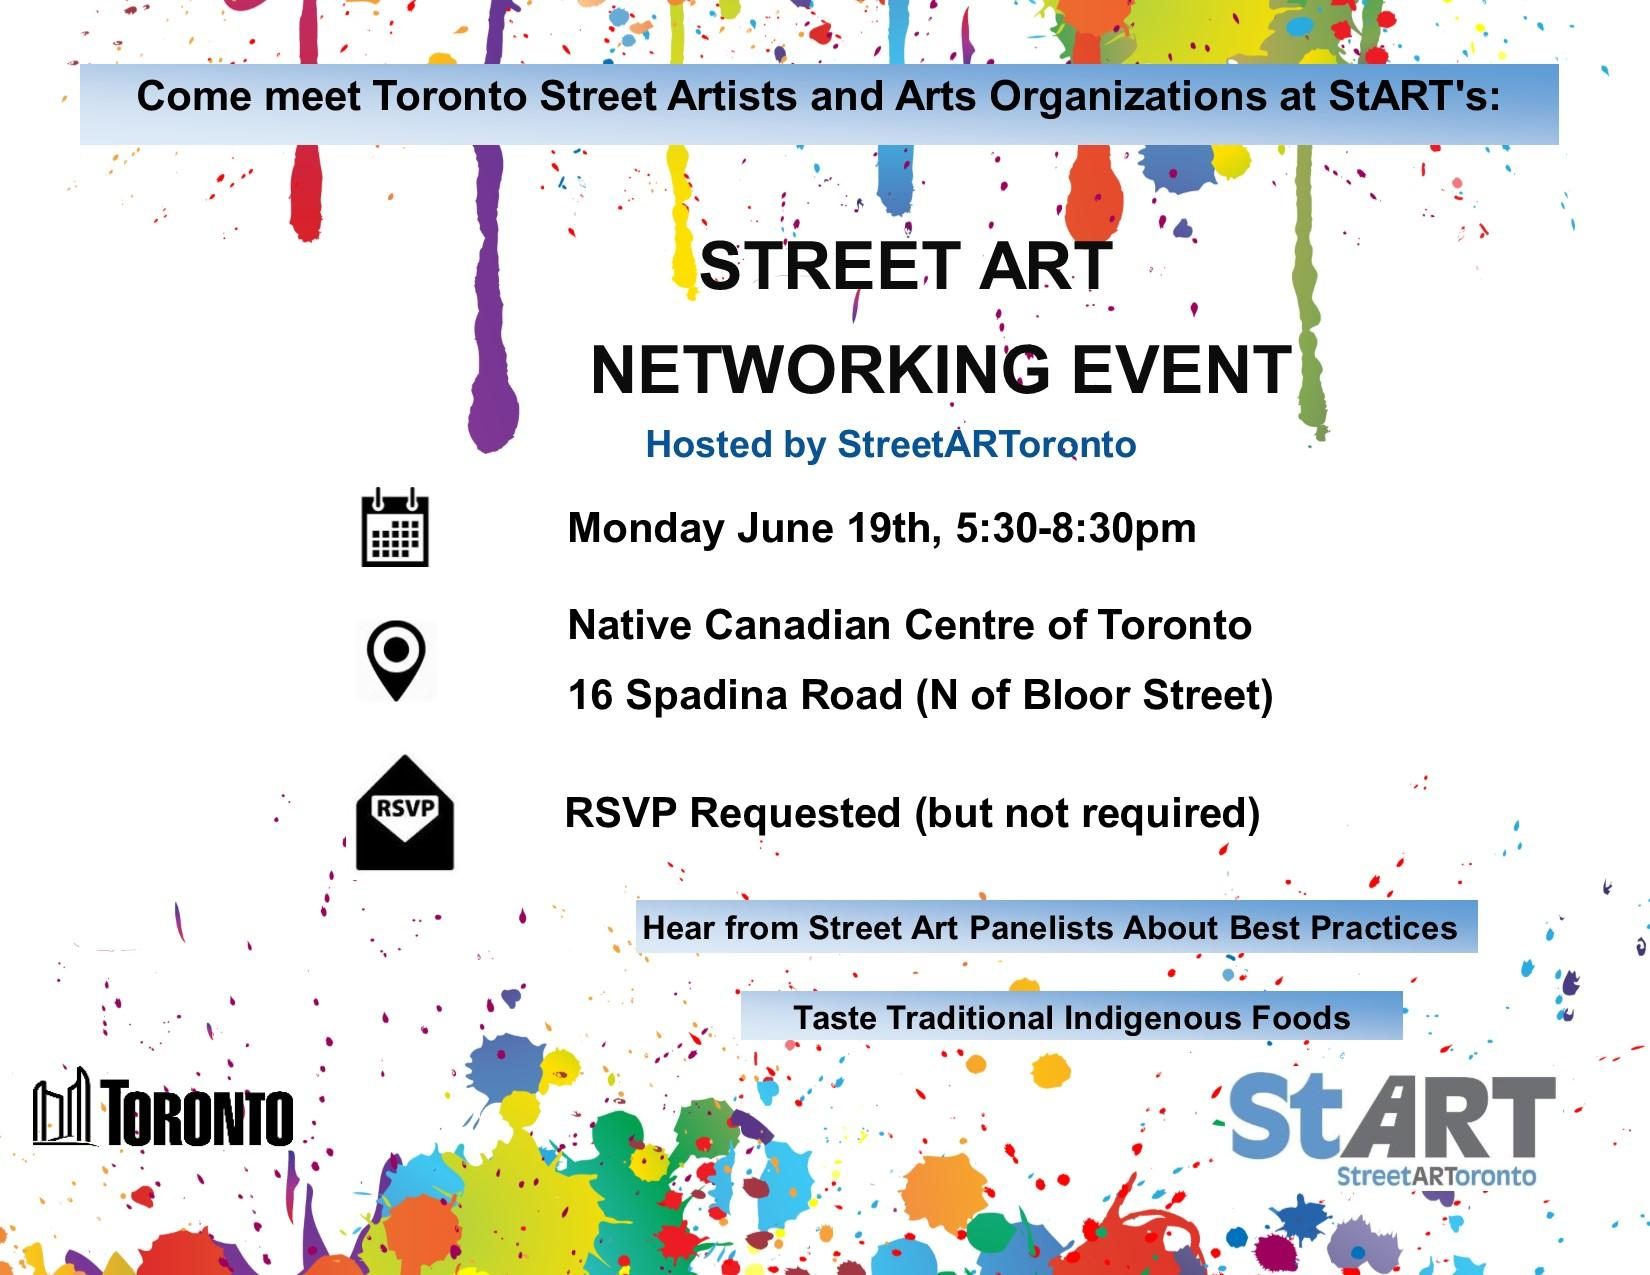 StARToronto Networking Event #2